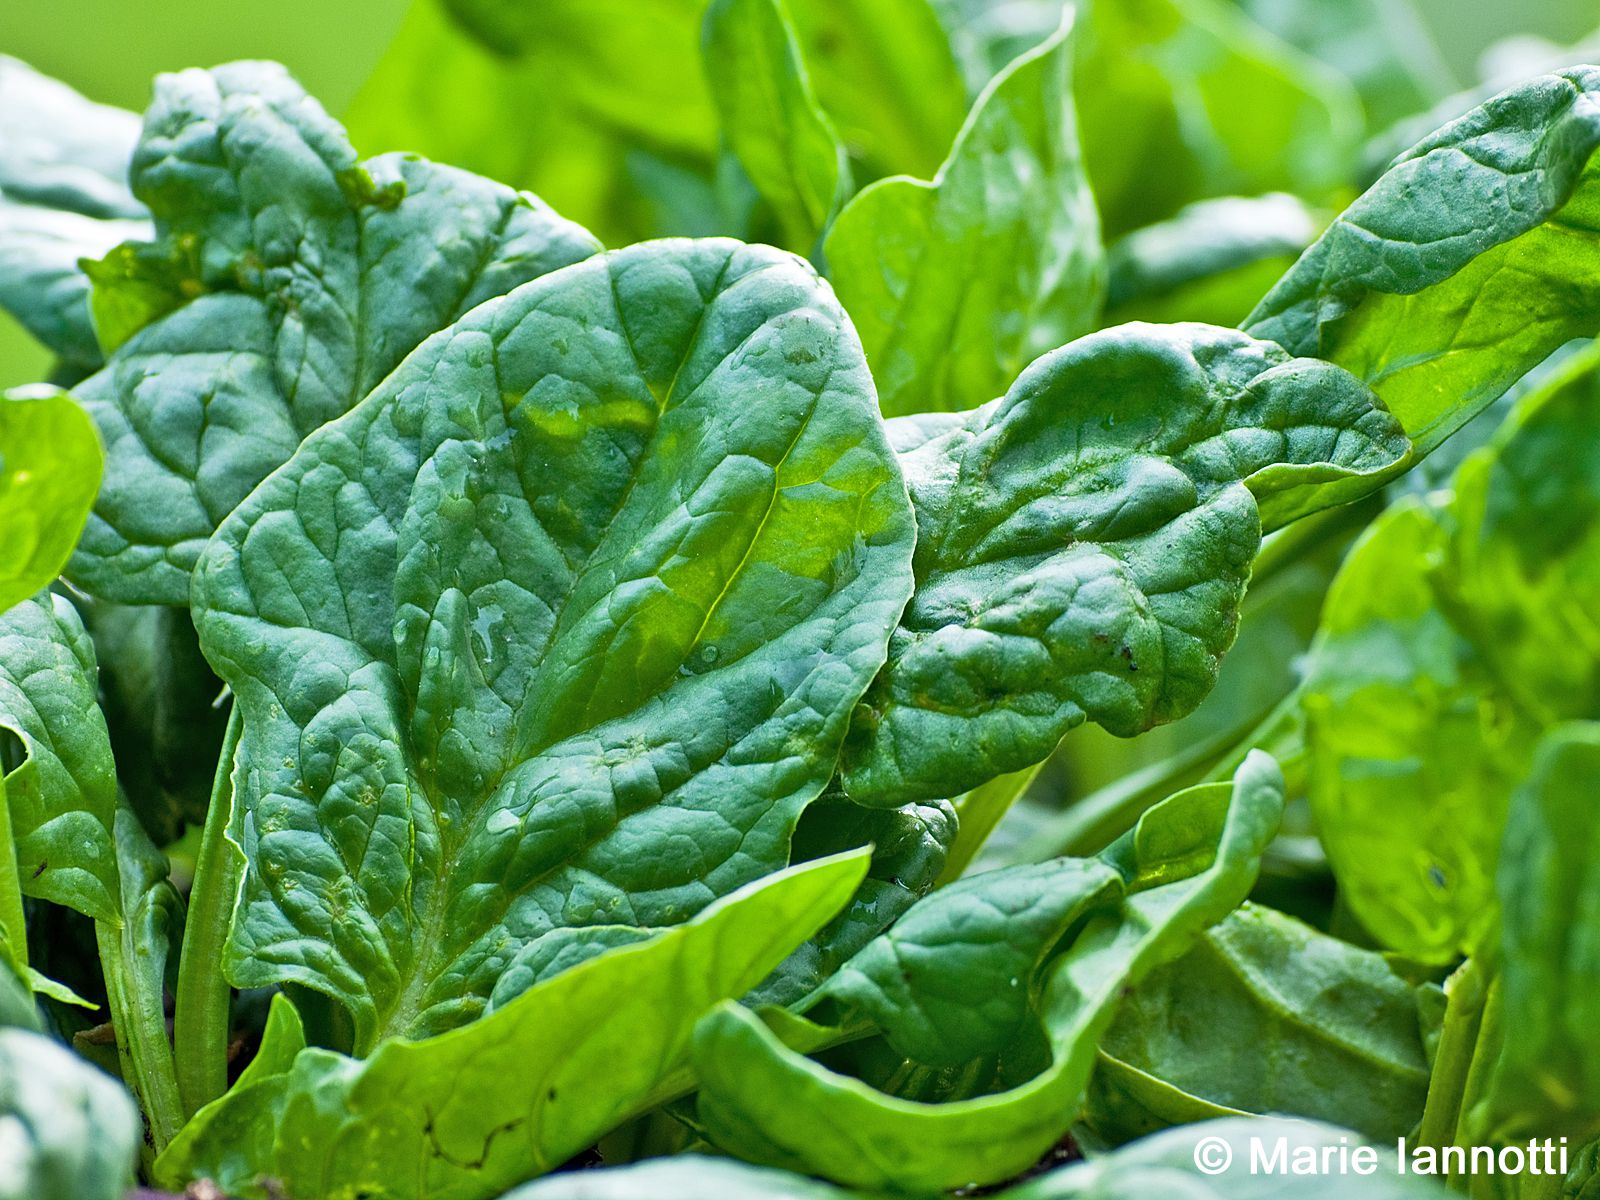 Home food garden - How To Grow Spinach In The Home Vegetable Garden